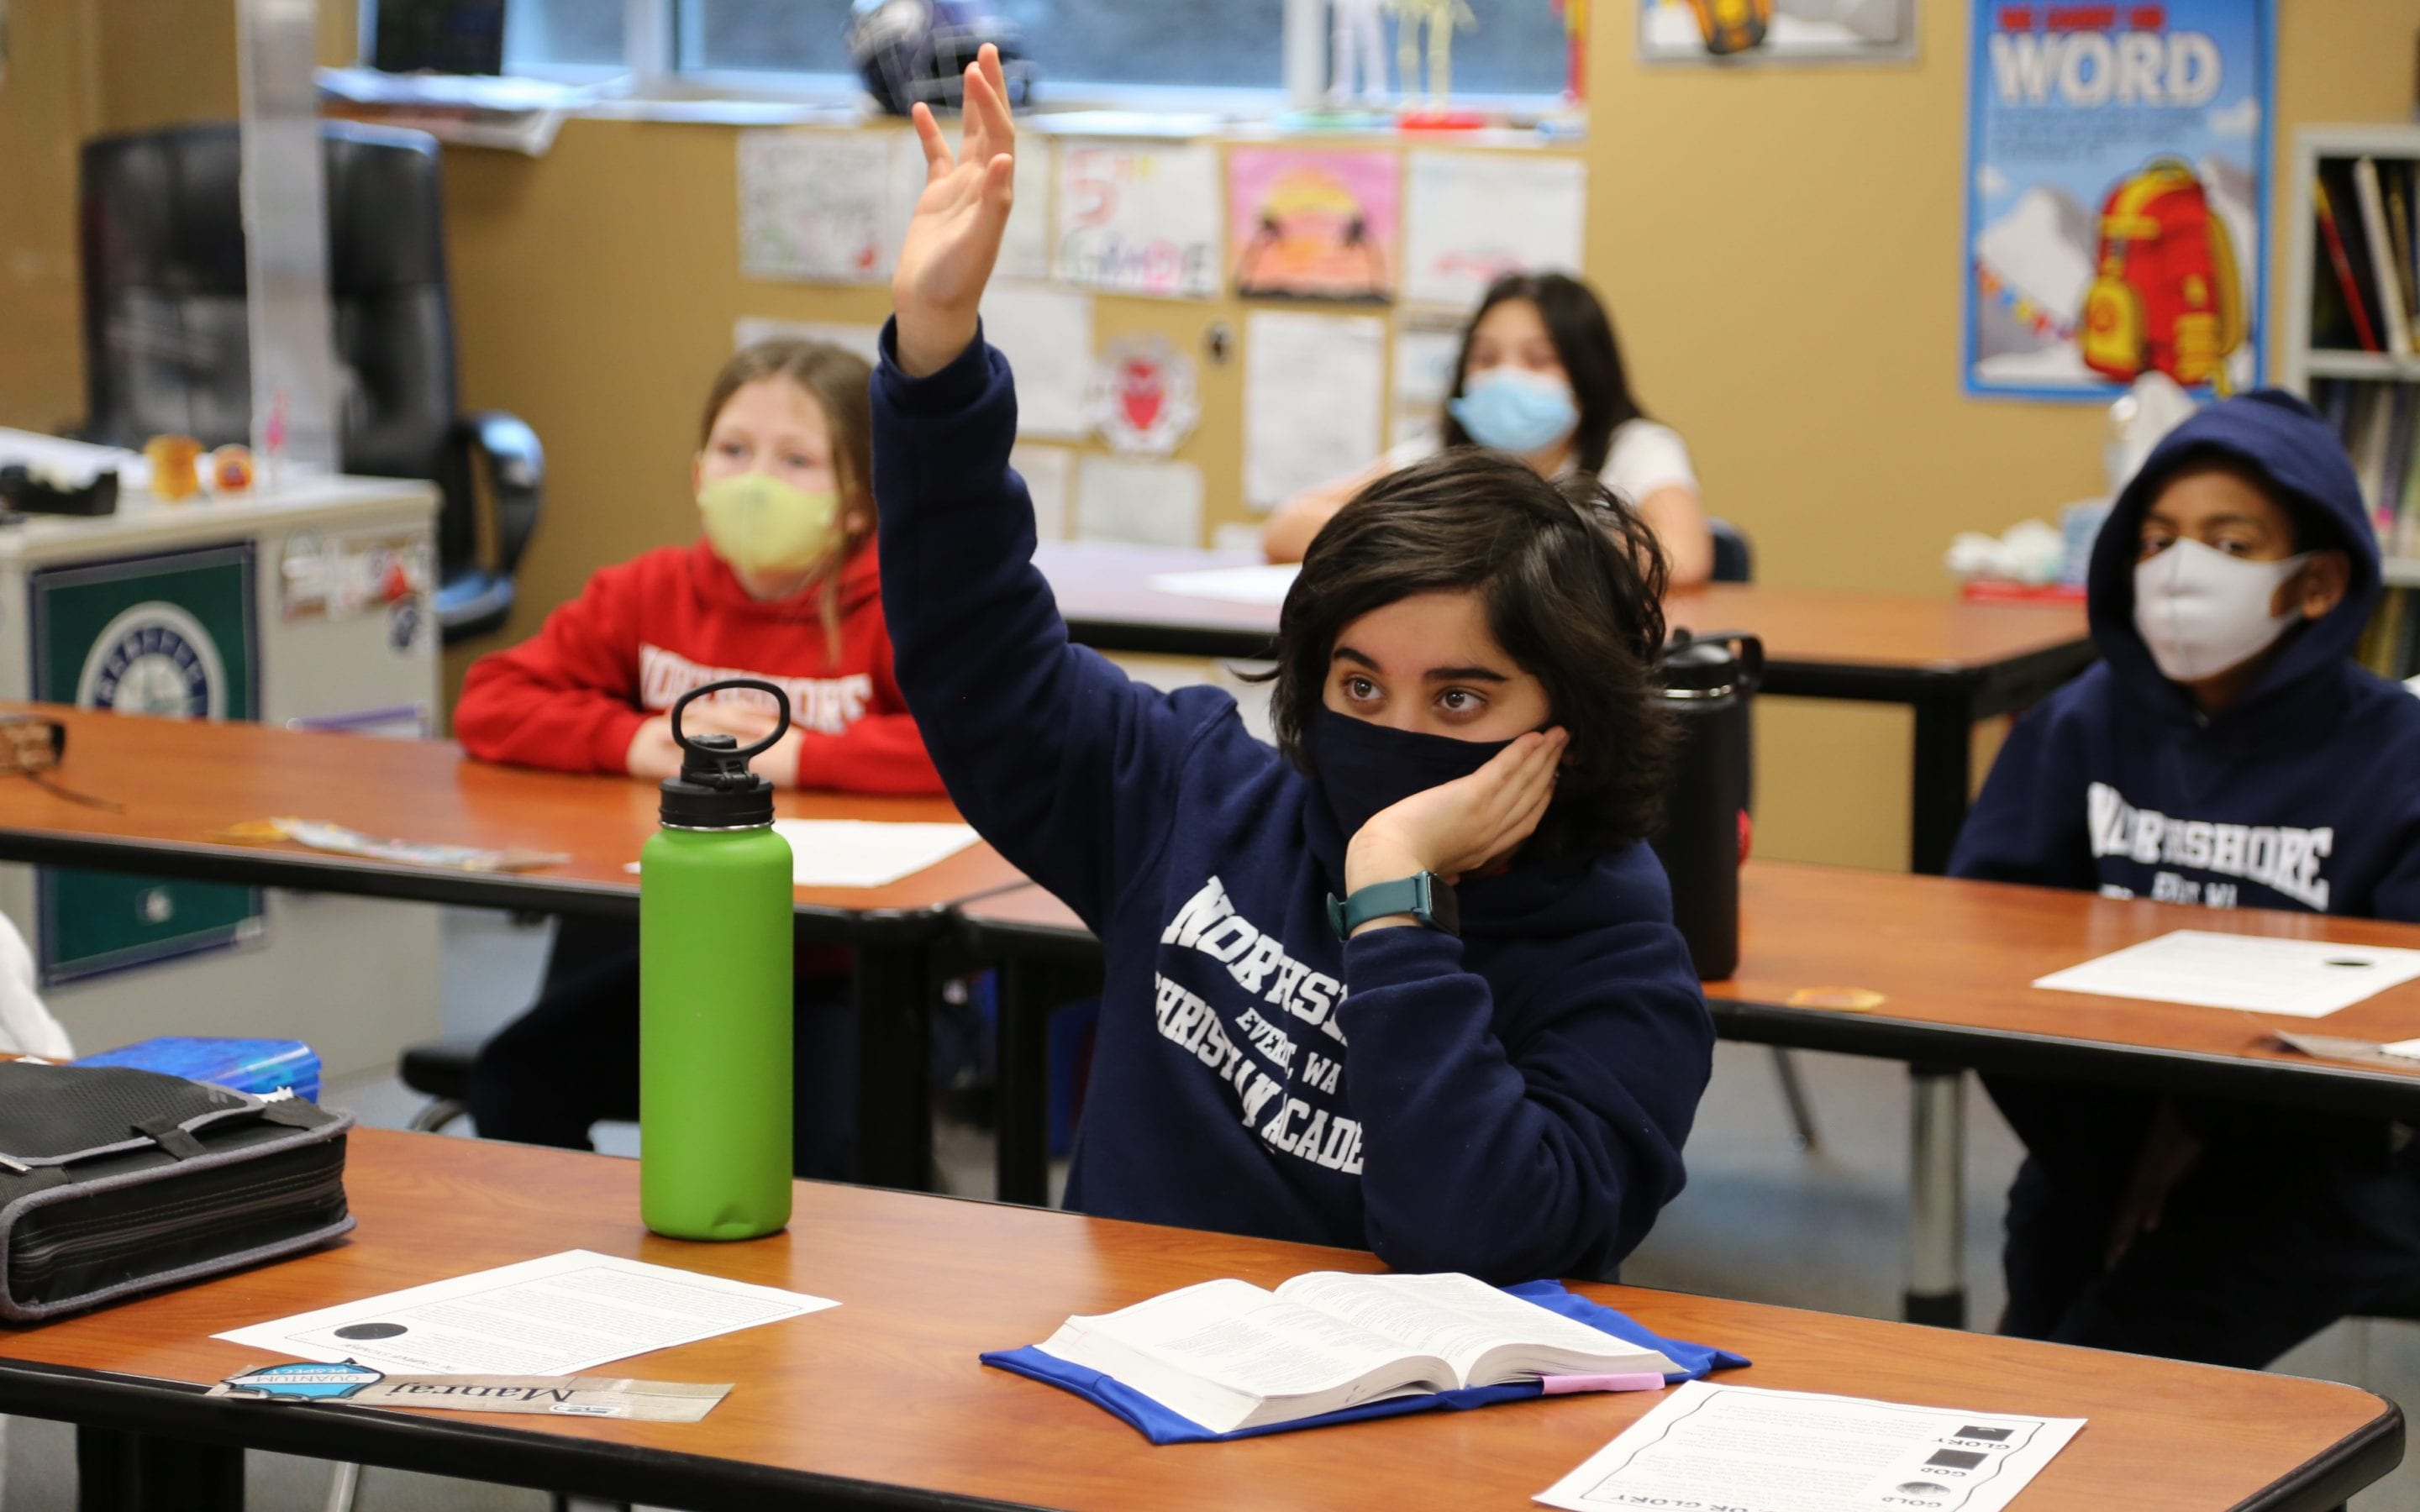 Northshore Christian Academy student wearing a mask in the classroom to slow the spread of COVID